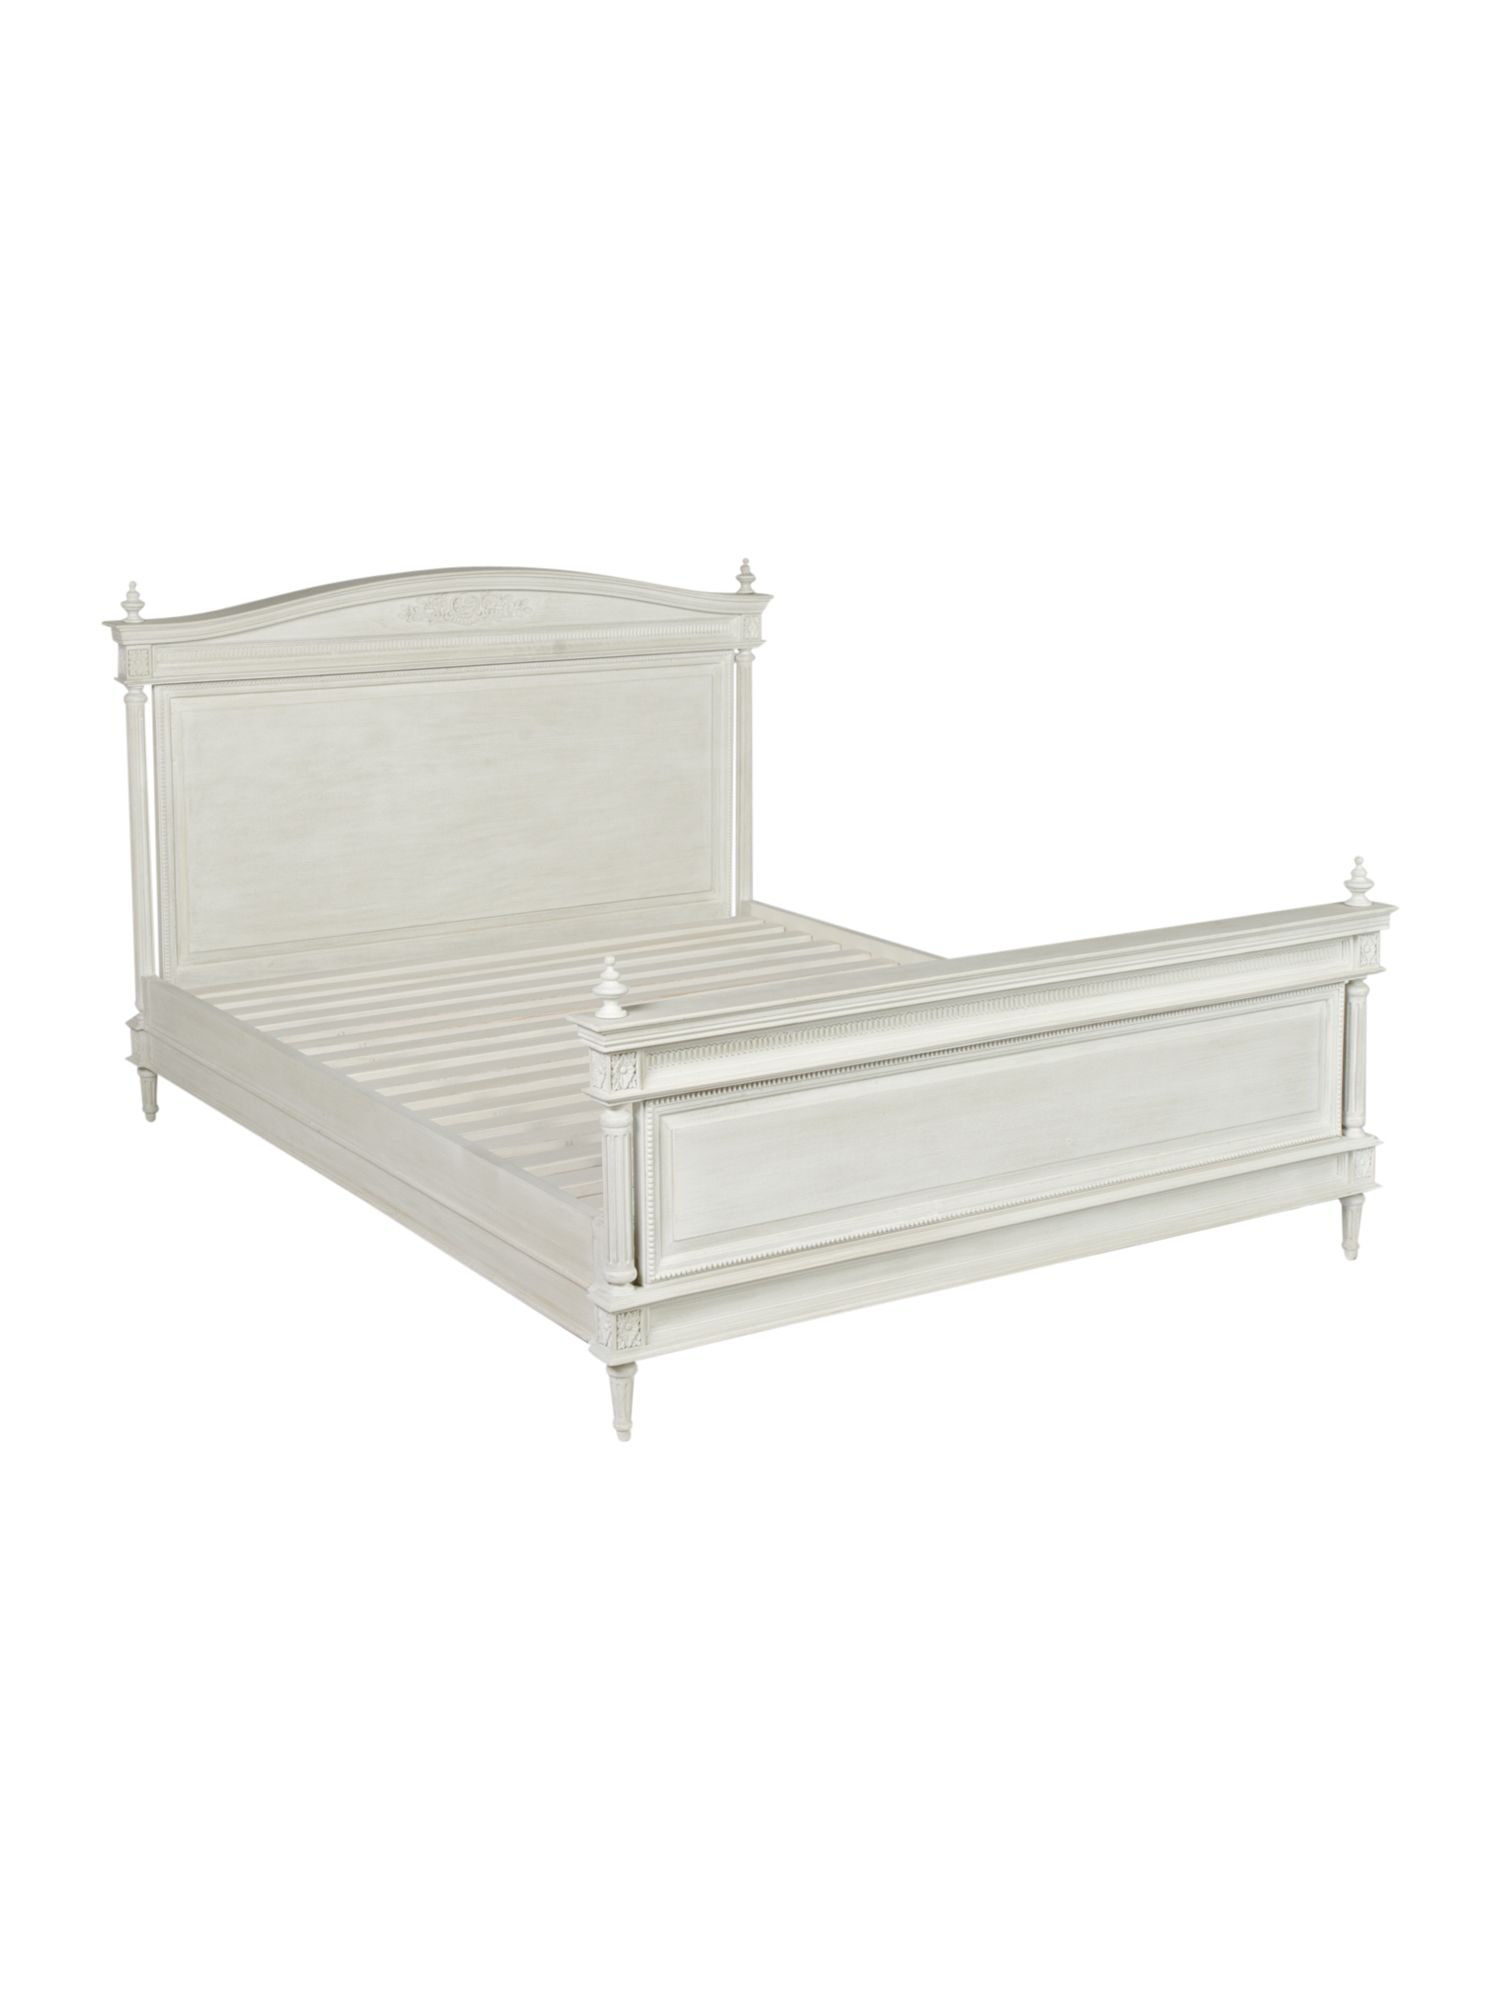 Heather king size bedstead